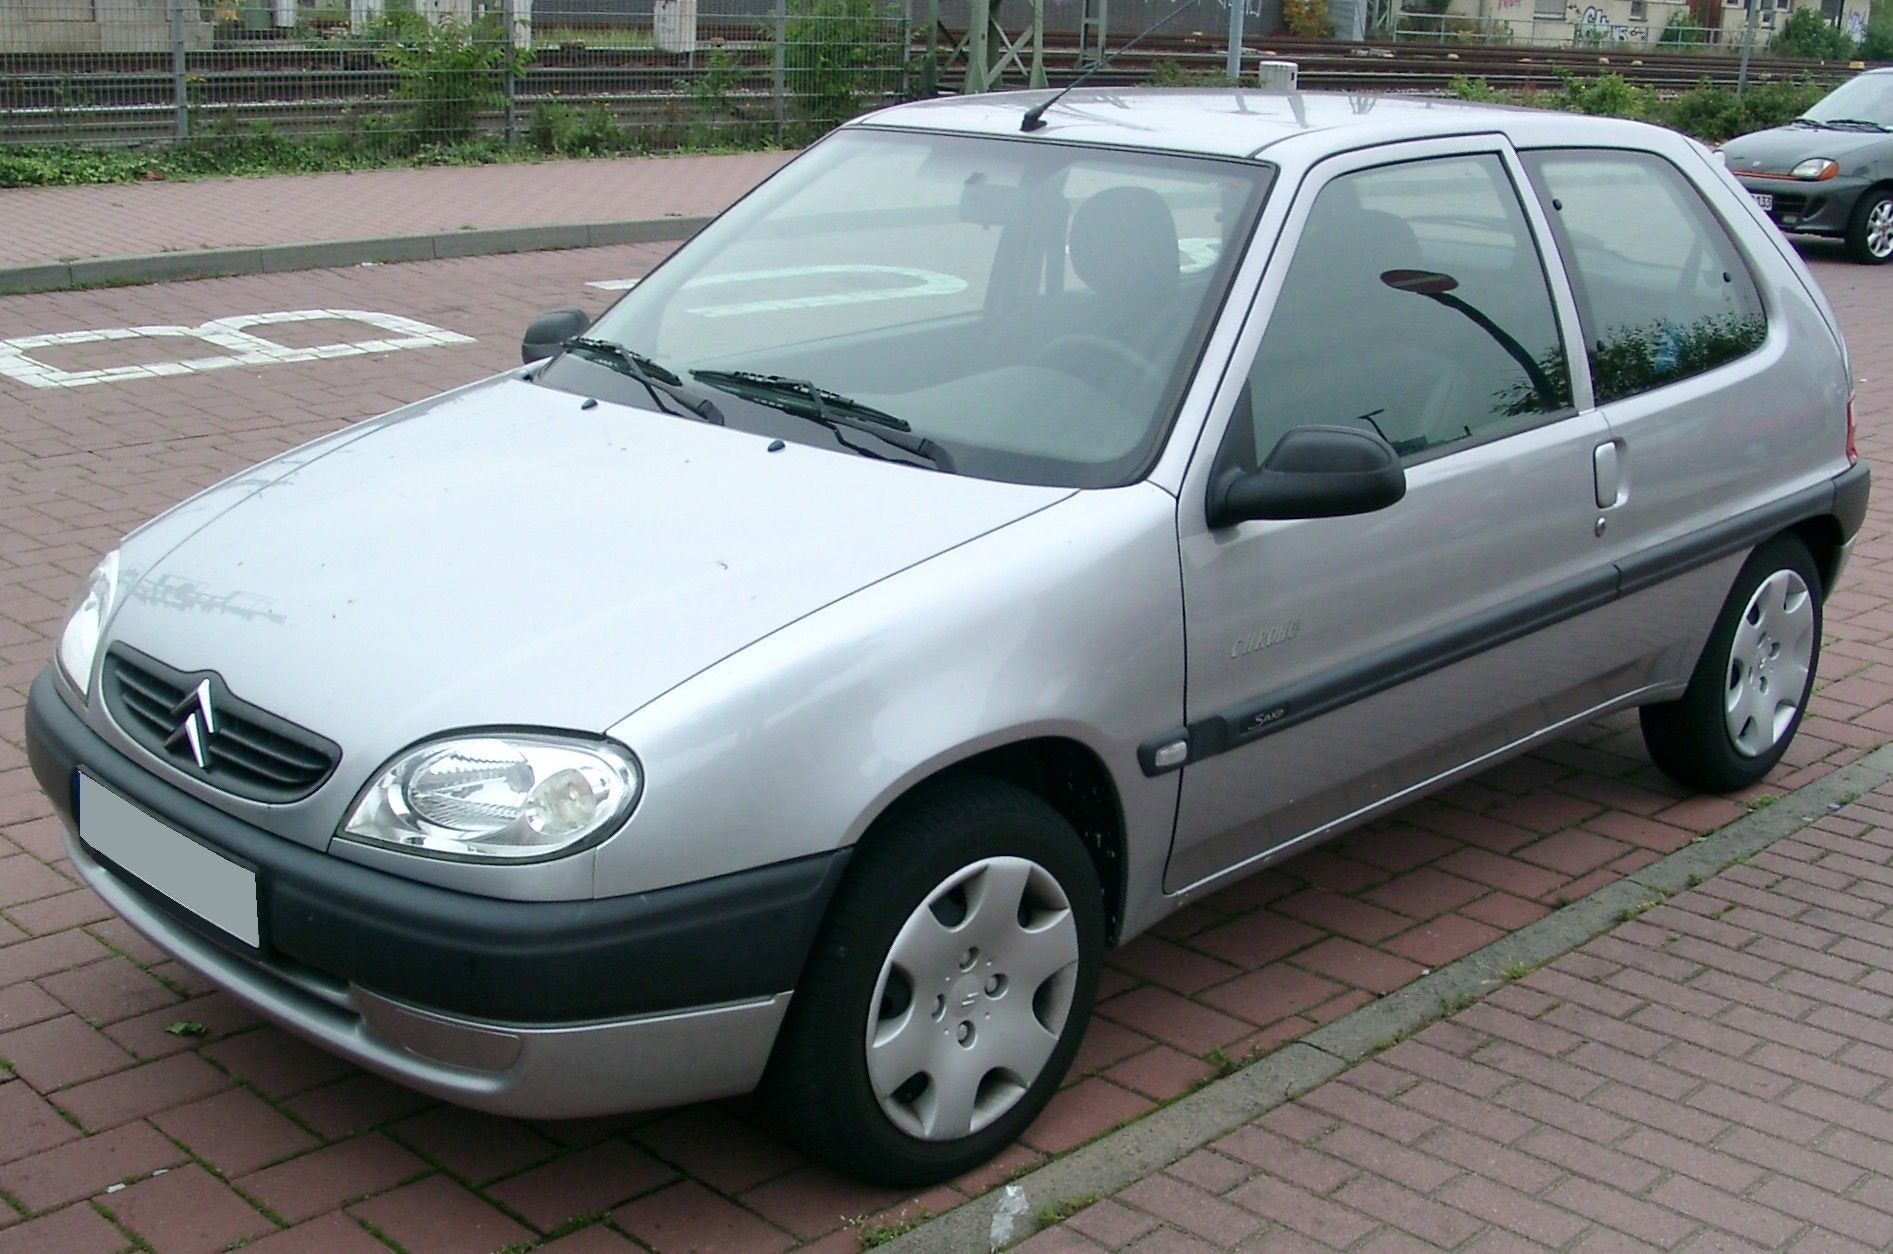 citroen saxo, 2001, Essence, automatique